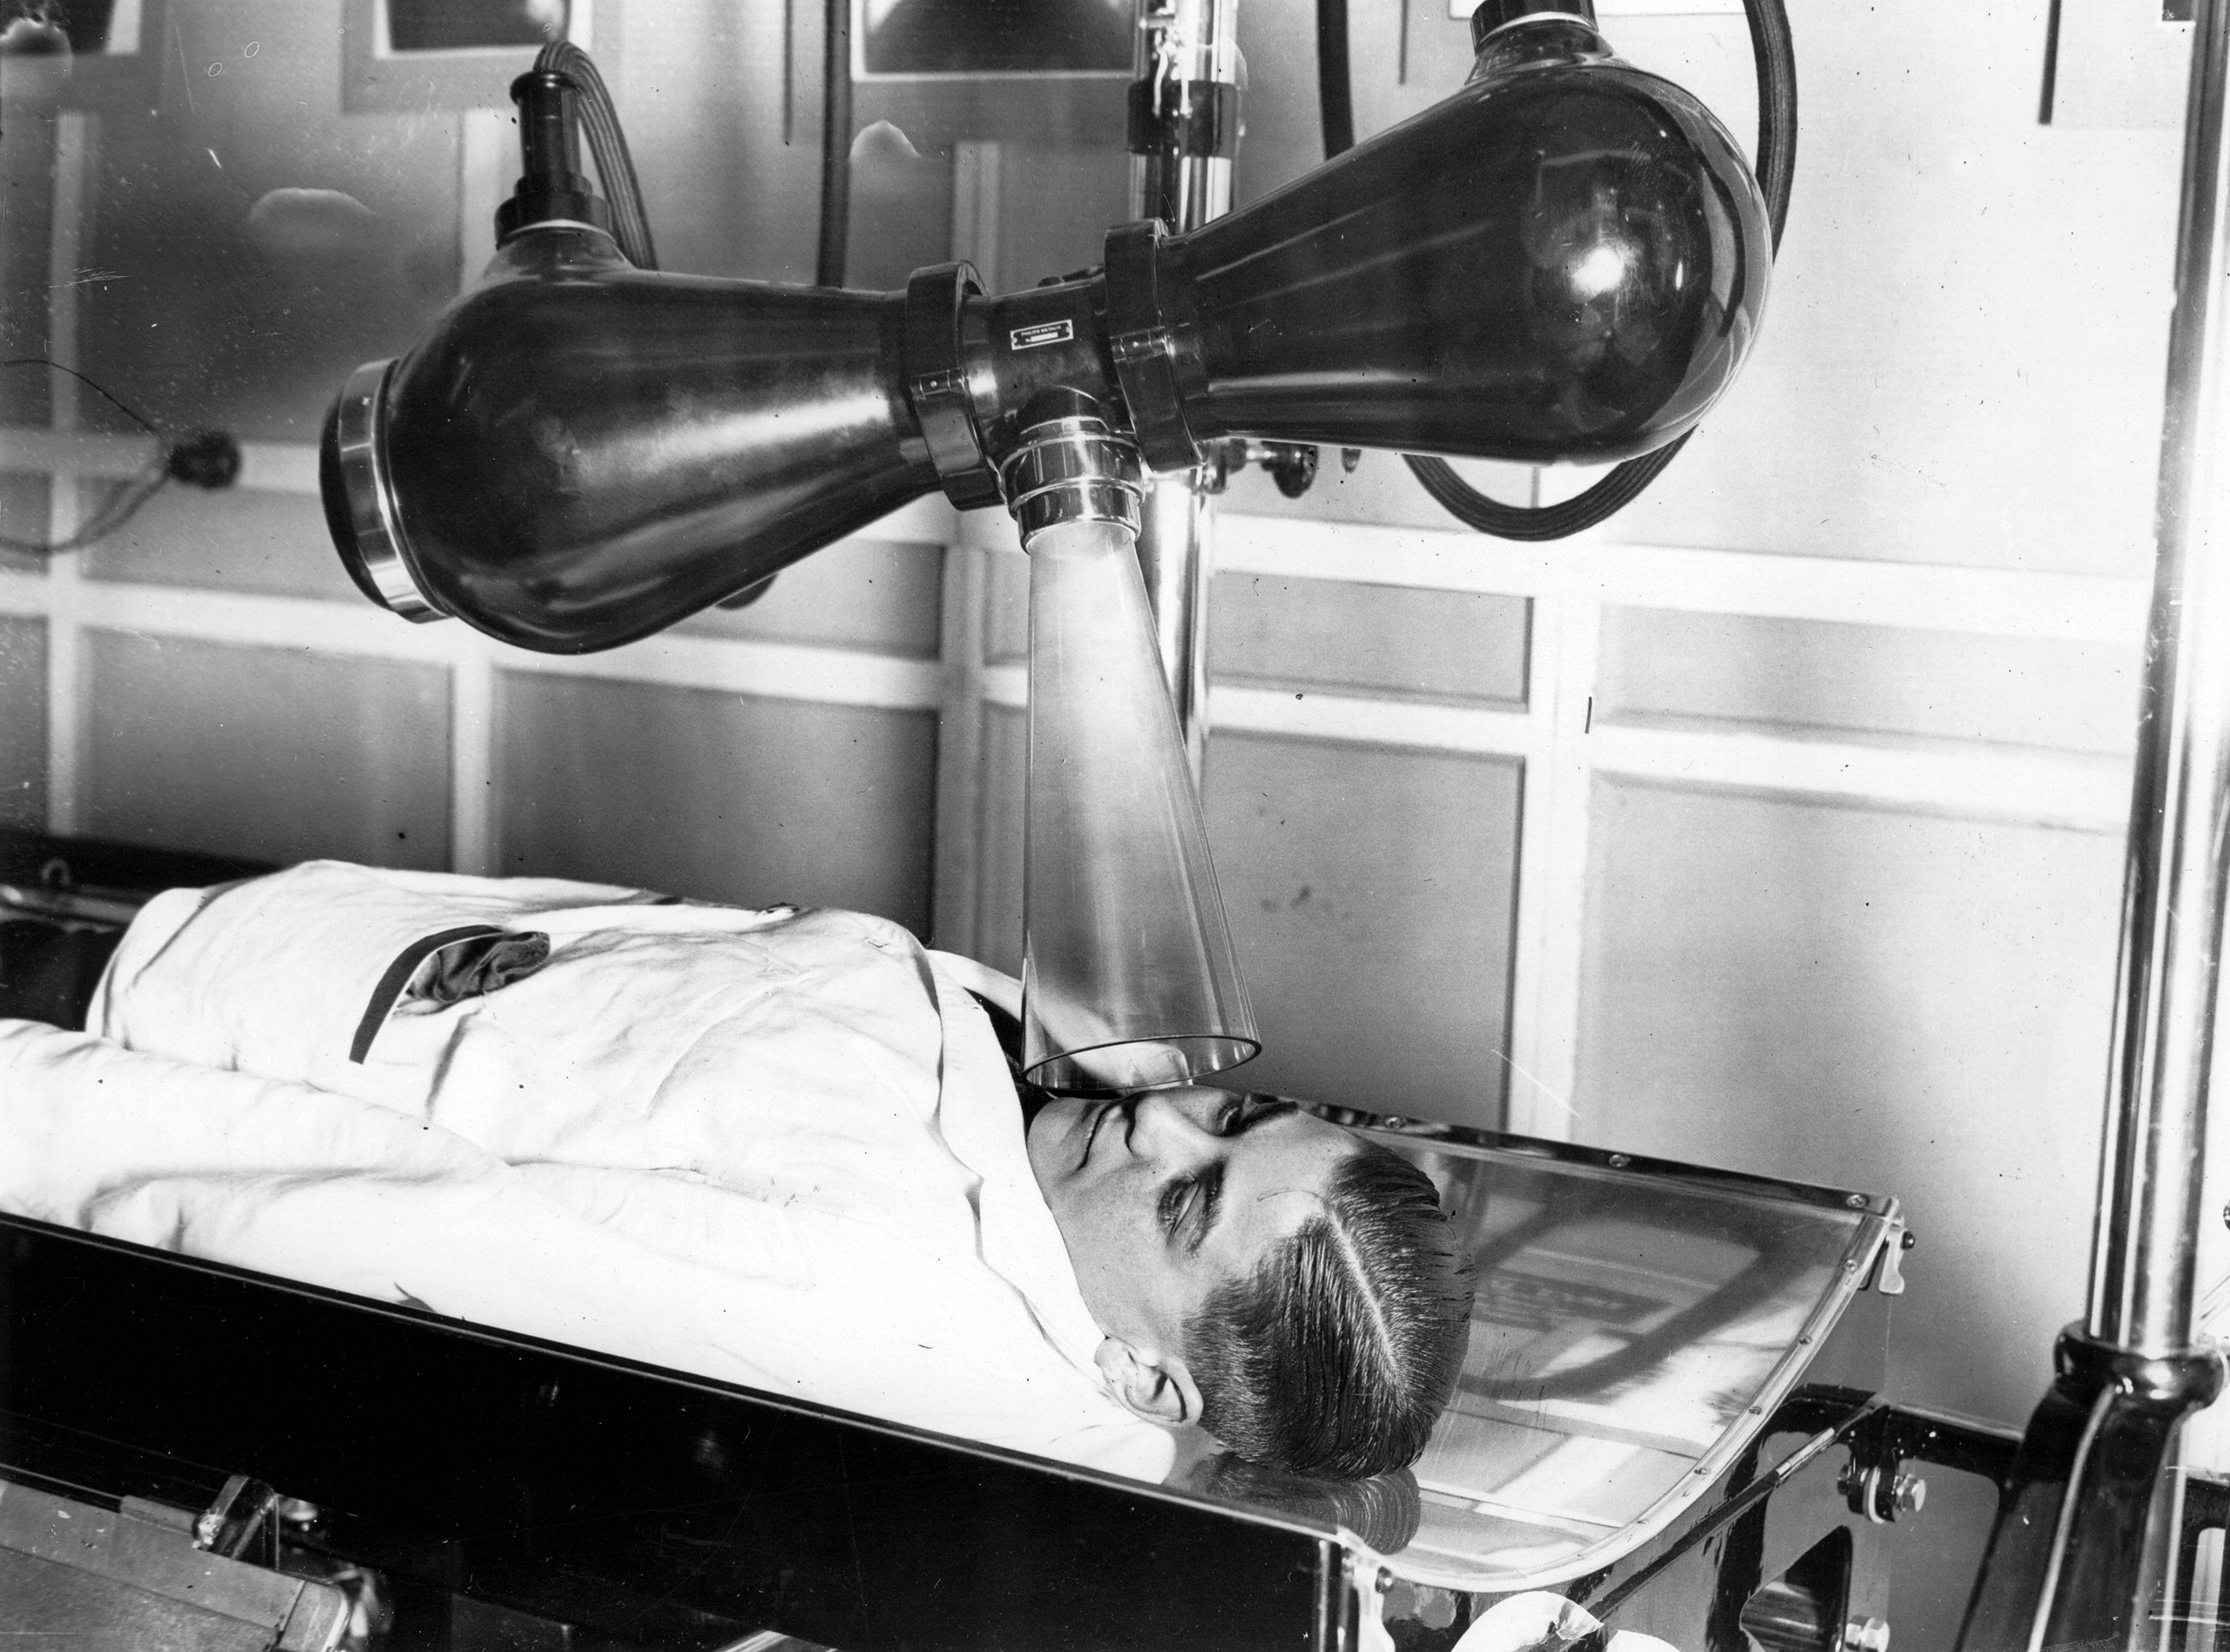 An x-ray demonstration with the latest x-ray apparatus. London. 1932.